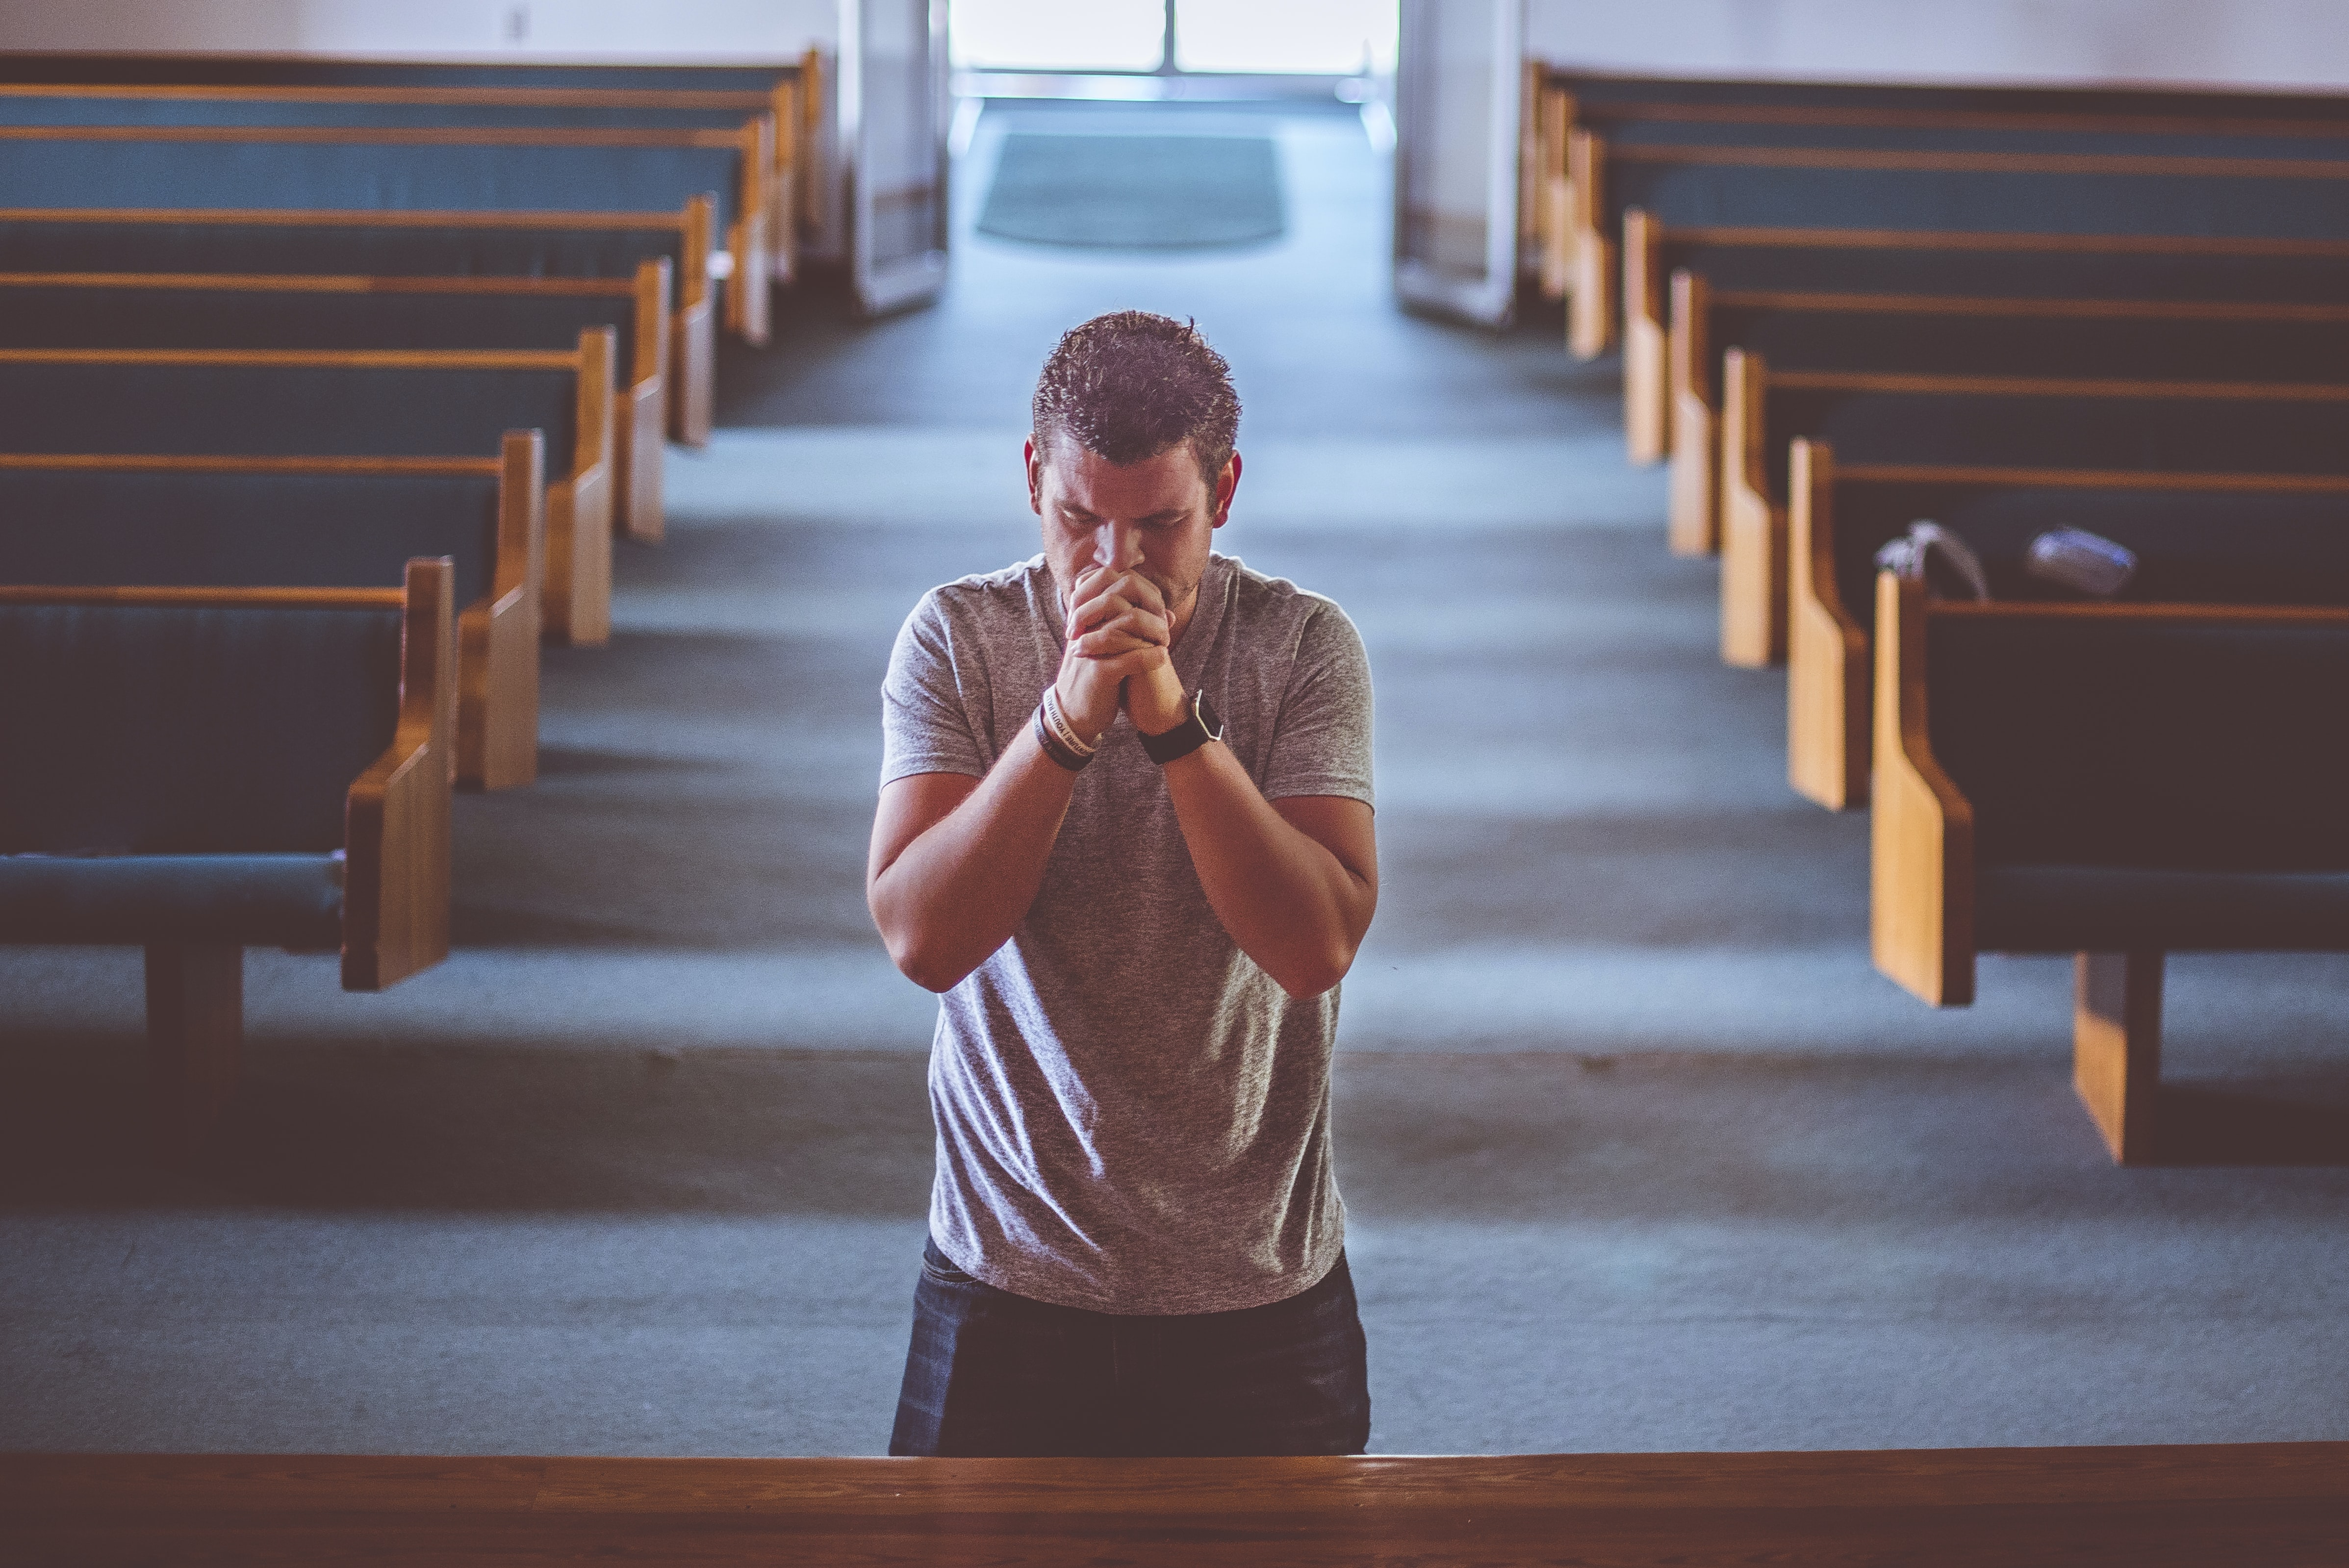 A man praying in a church.